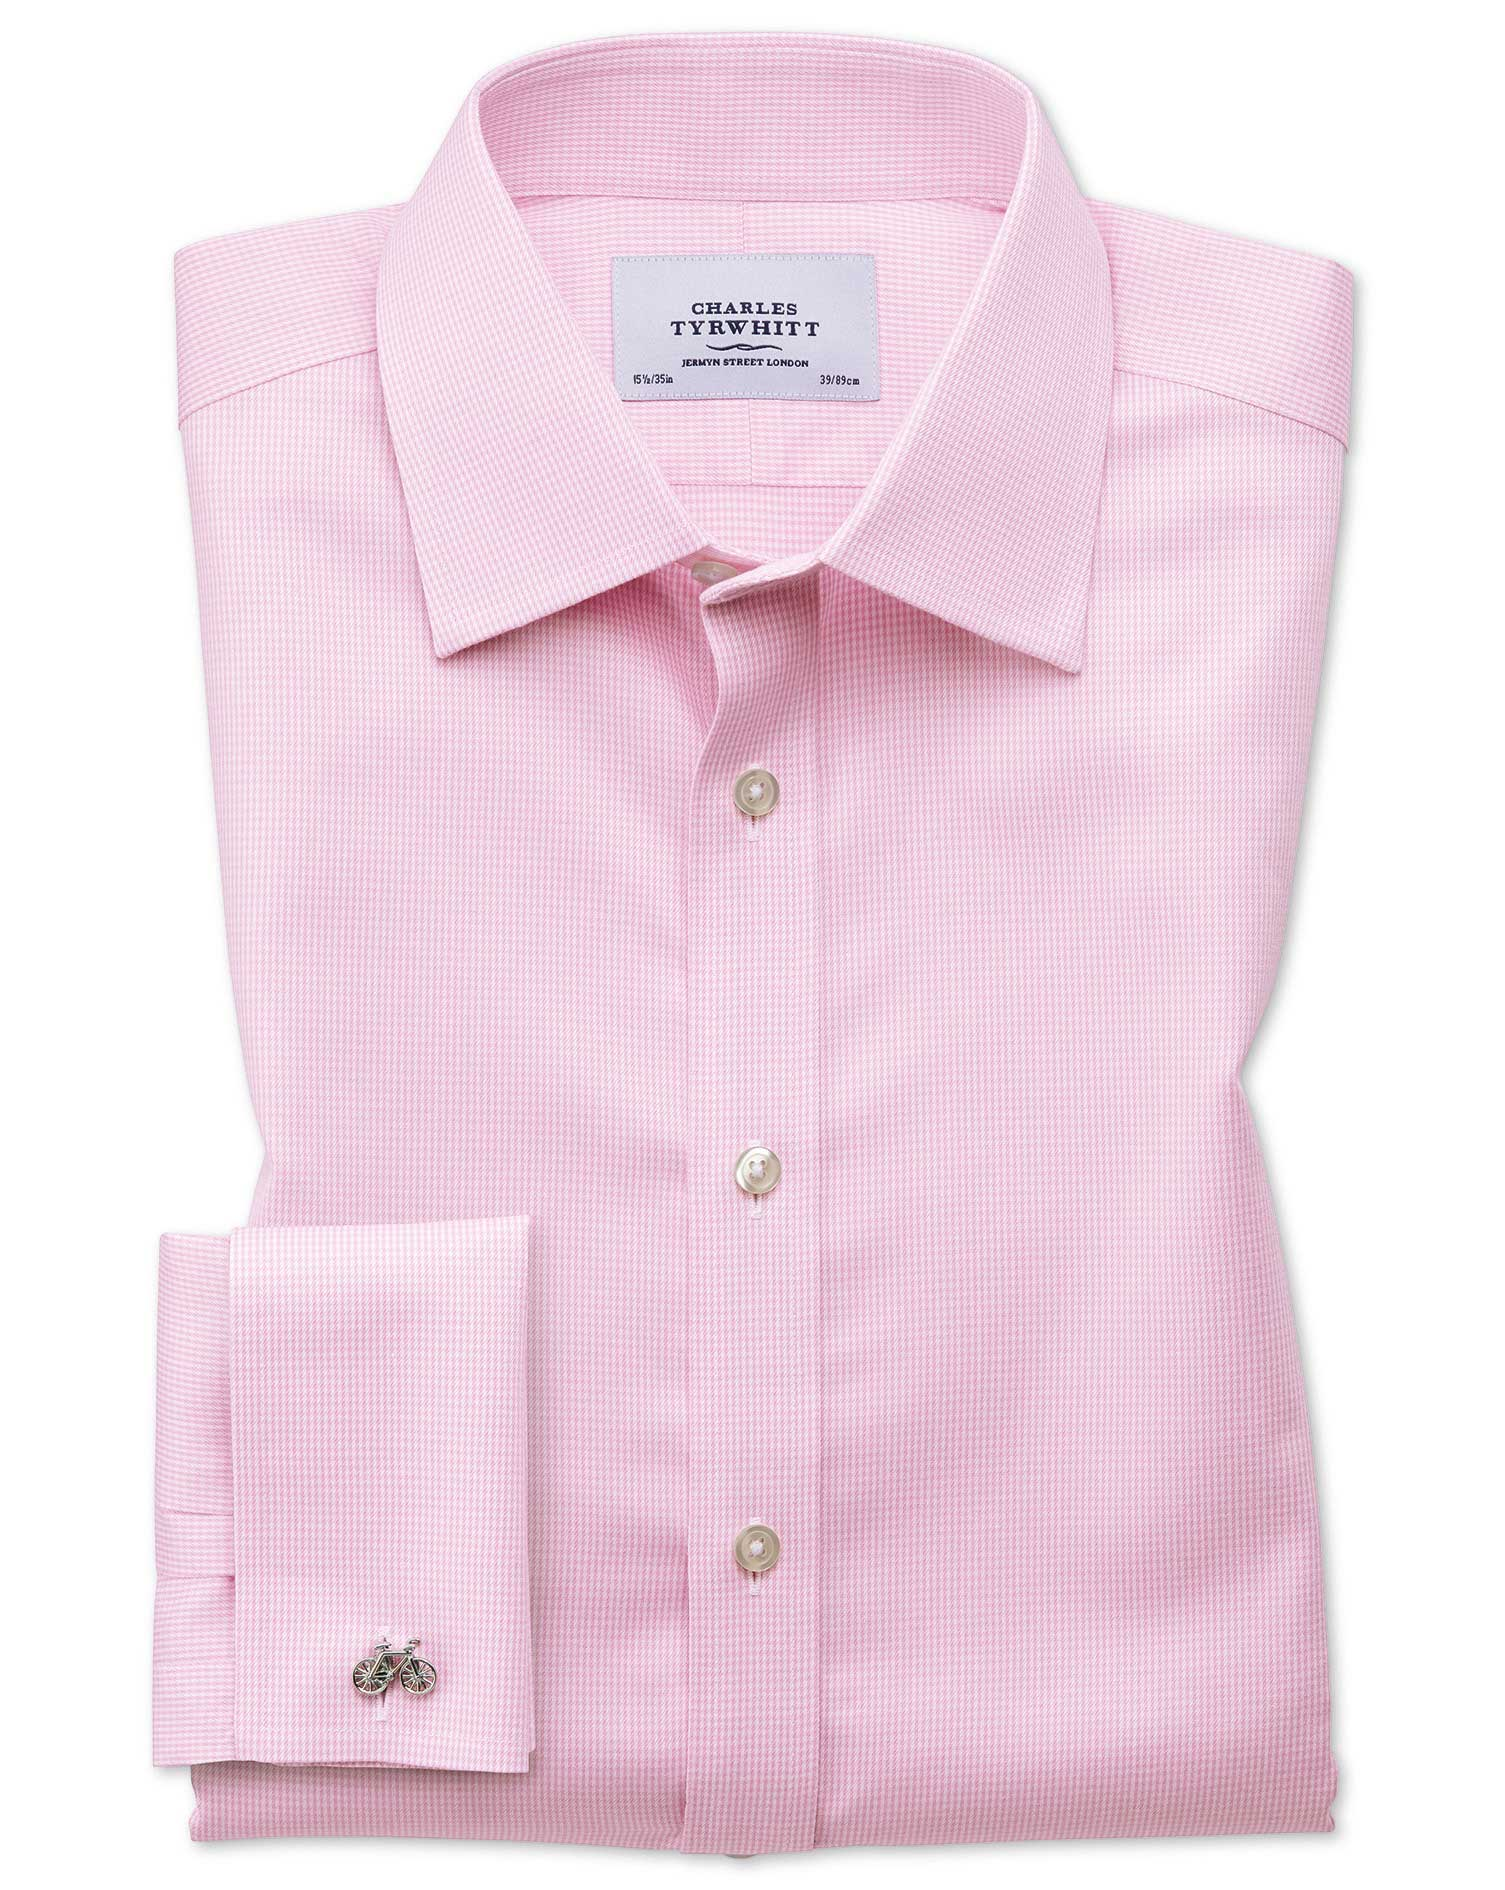 Classic Fit Non-Iron Puppytooth Light Pink Cotton Formal Shirt Single Cuff Size 16/35 by Charles Tyr